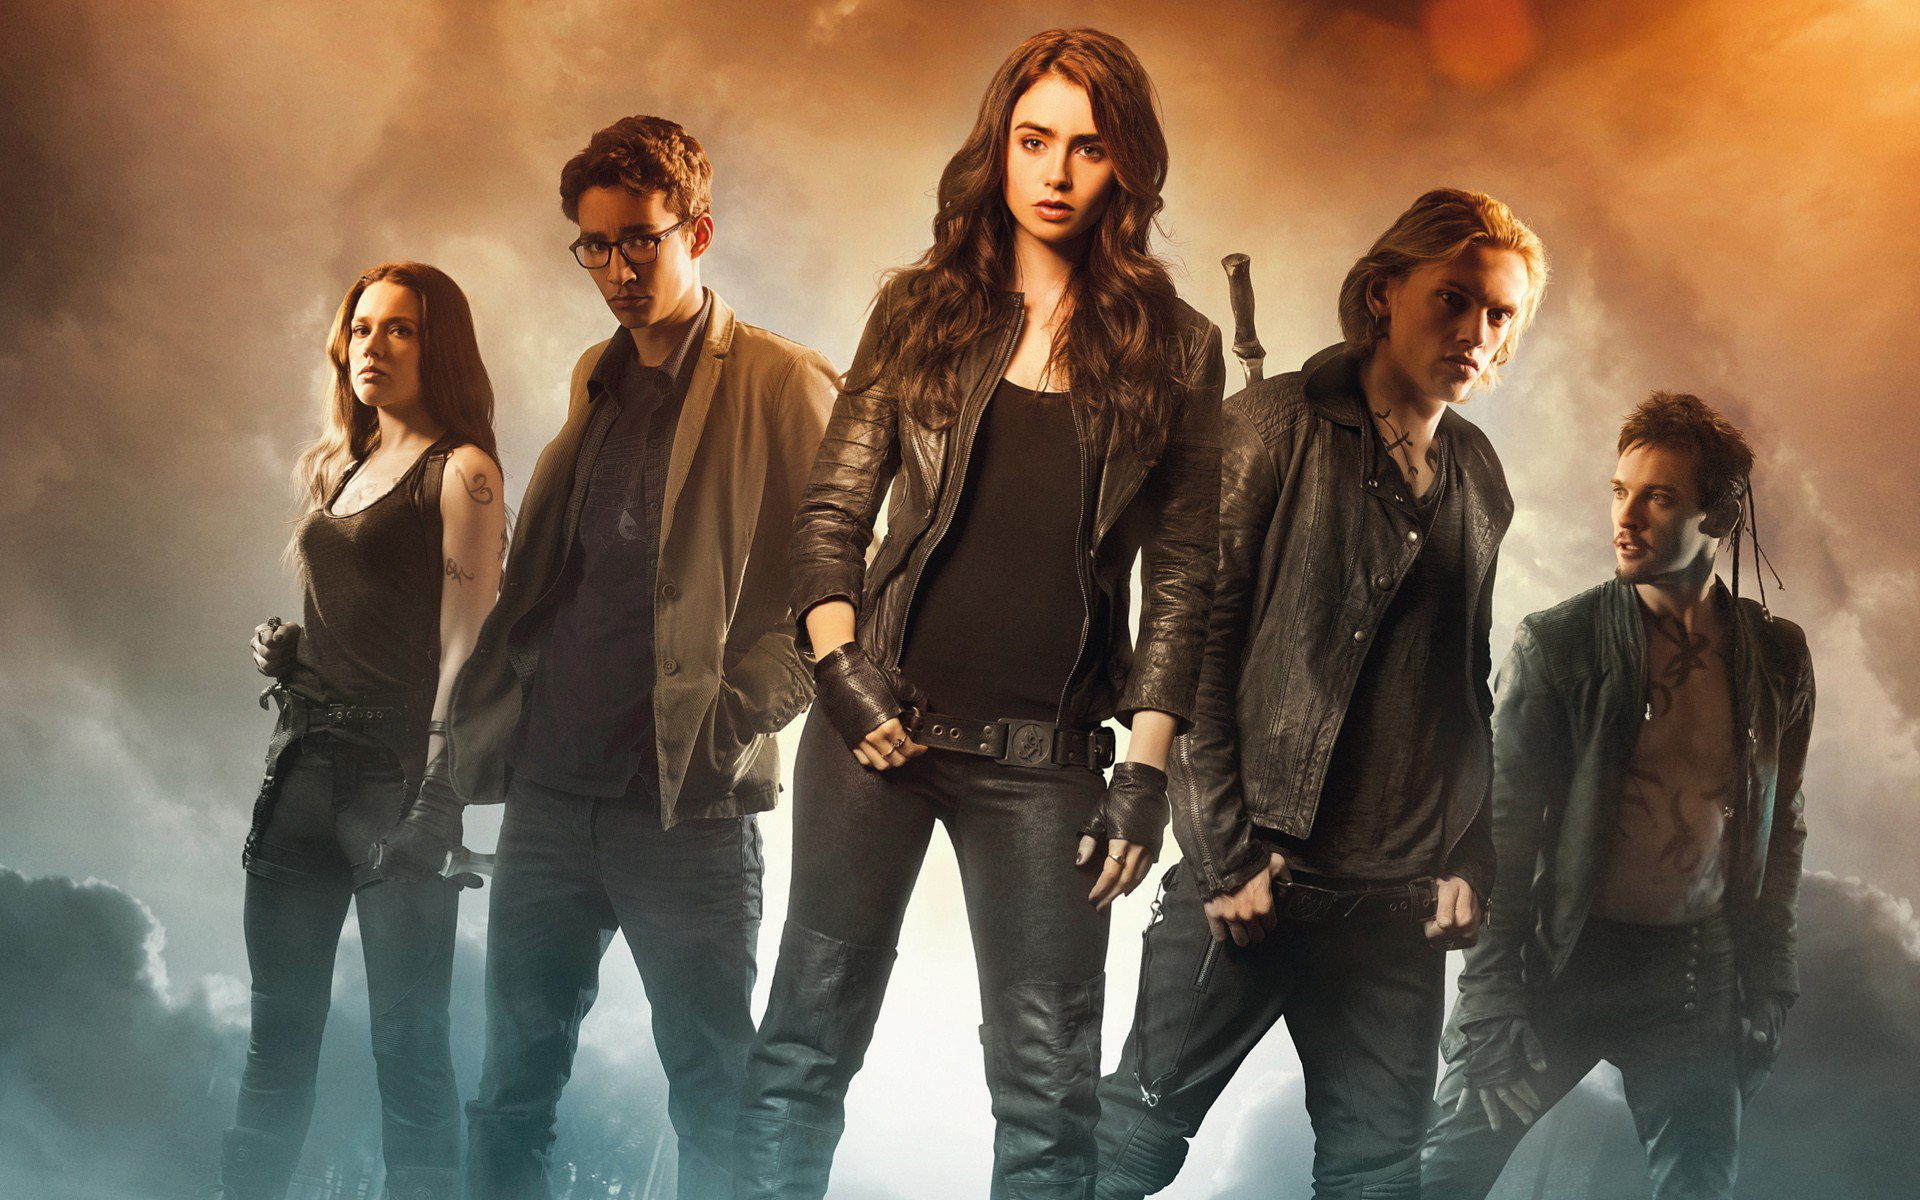 the mortal instruments city of bones, hd movies, 4k wallpapers